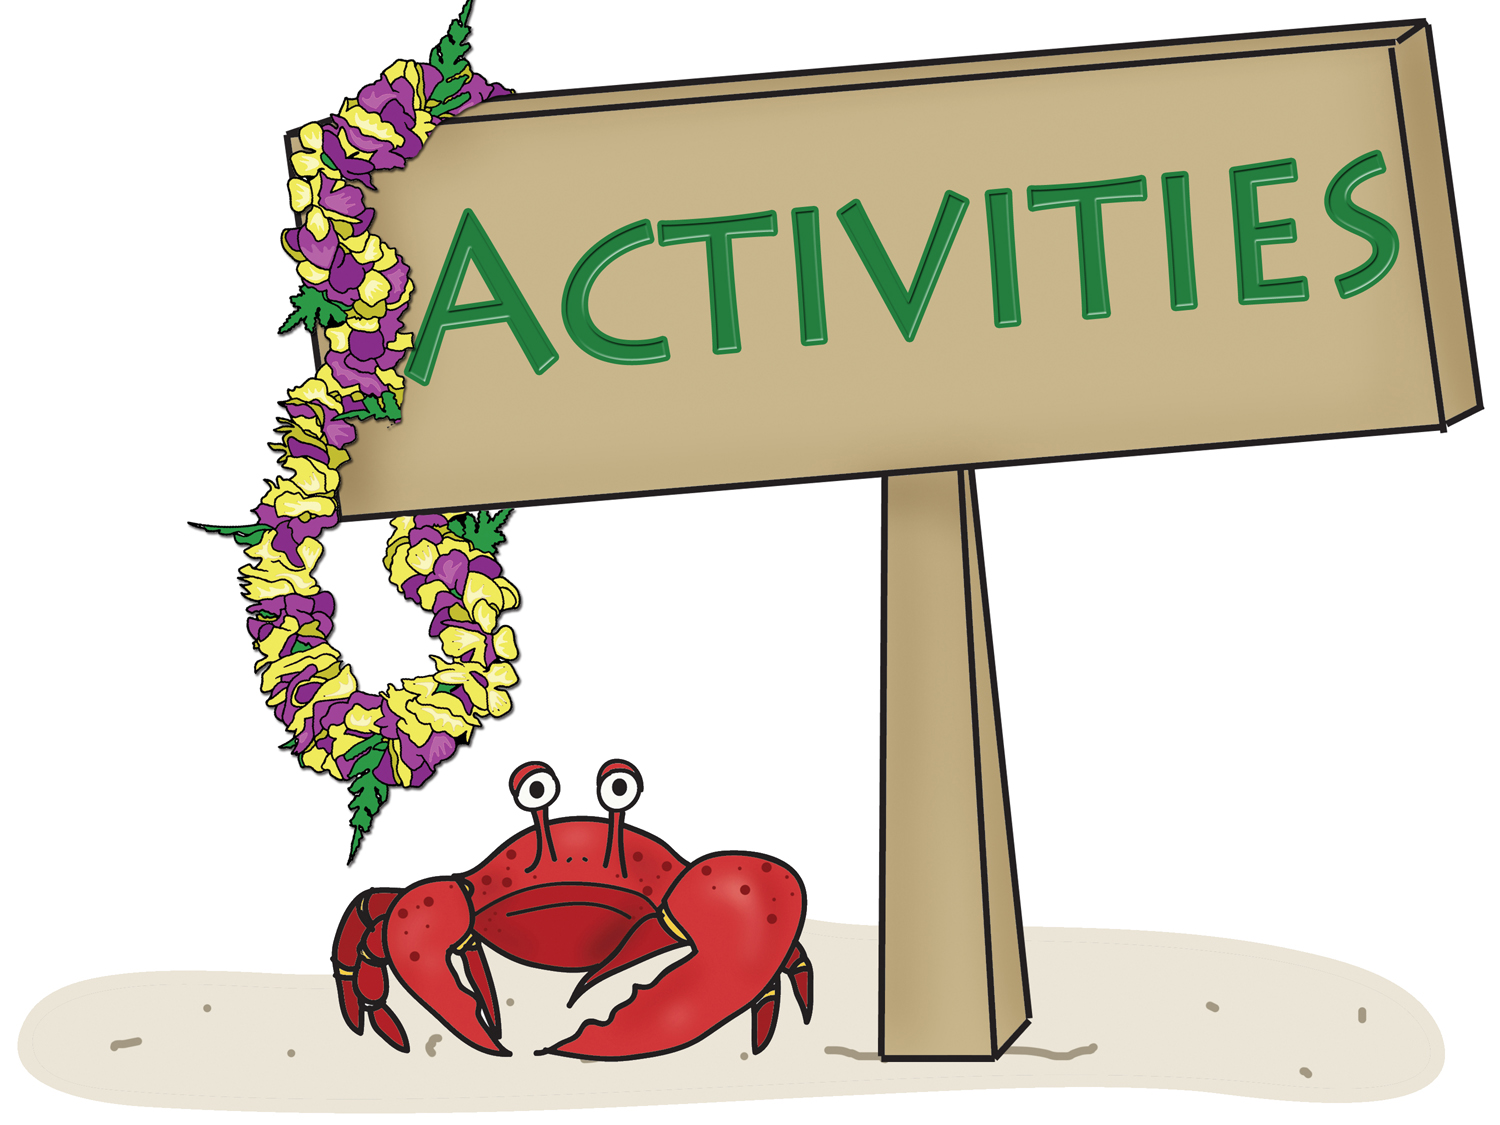 1 clipart activity. Activities free download best